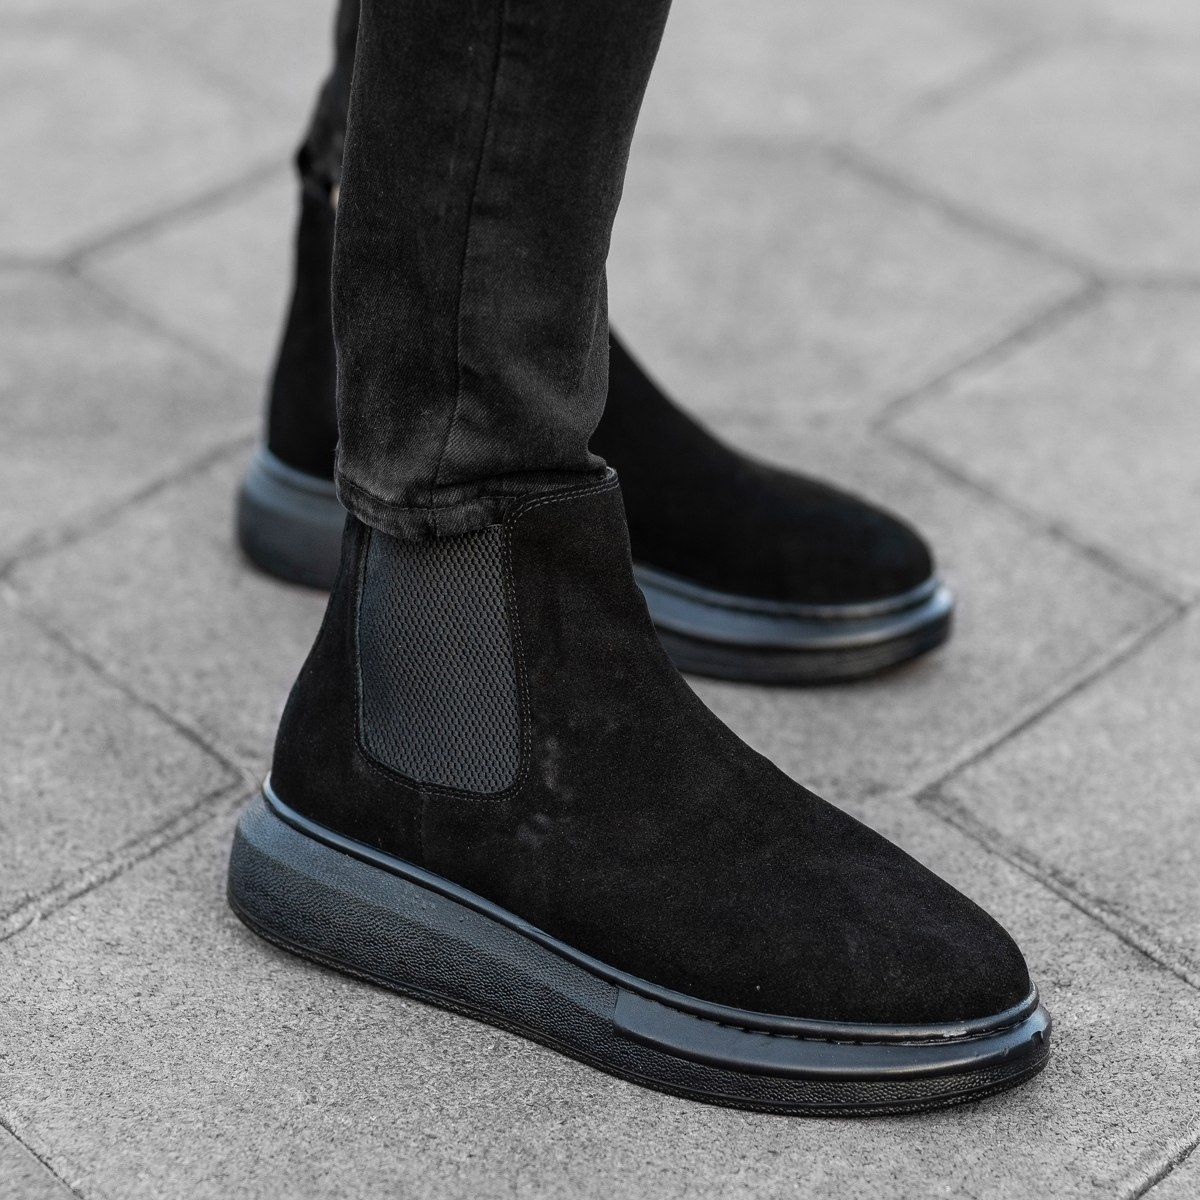 Genuine-Suede Hype Sole Chelsea Boots In Black Mv Premium Brand - 1